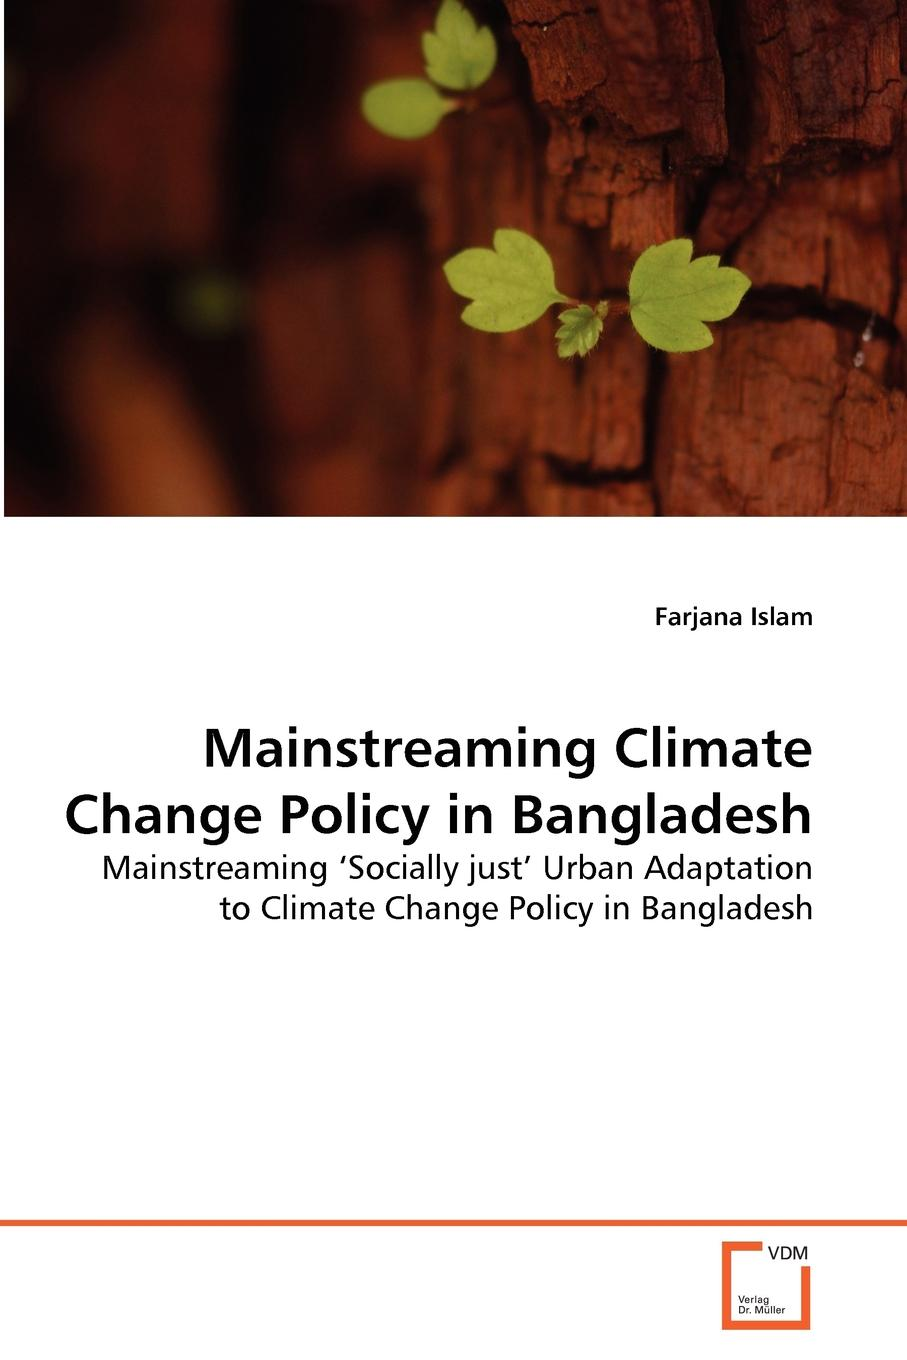 Farjana Islam Mainstreaming Climate Change Policy in Bangladesh economic adaptation to climate change